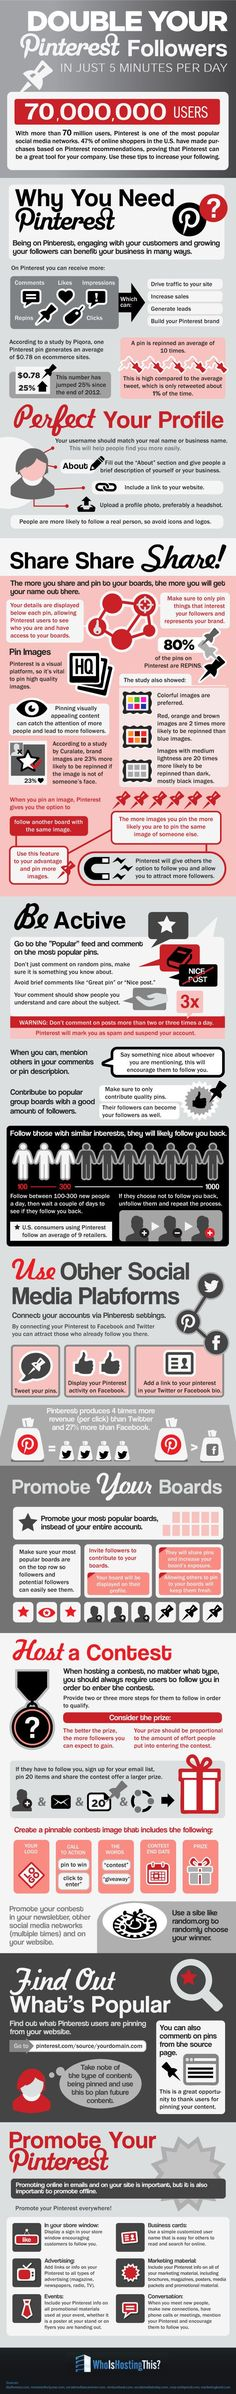 Double your interest followers in just 5 Minutes per day - infographic. Pinned this for the things to include in a Pinterest competition.